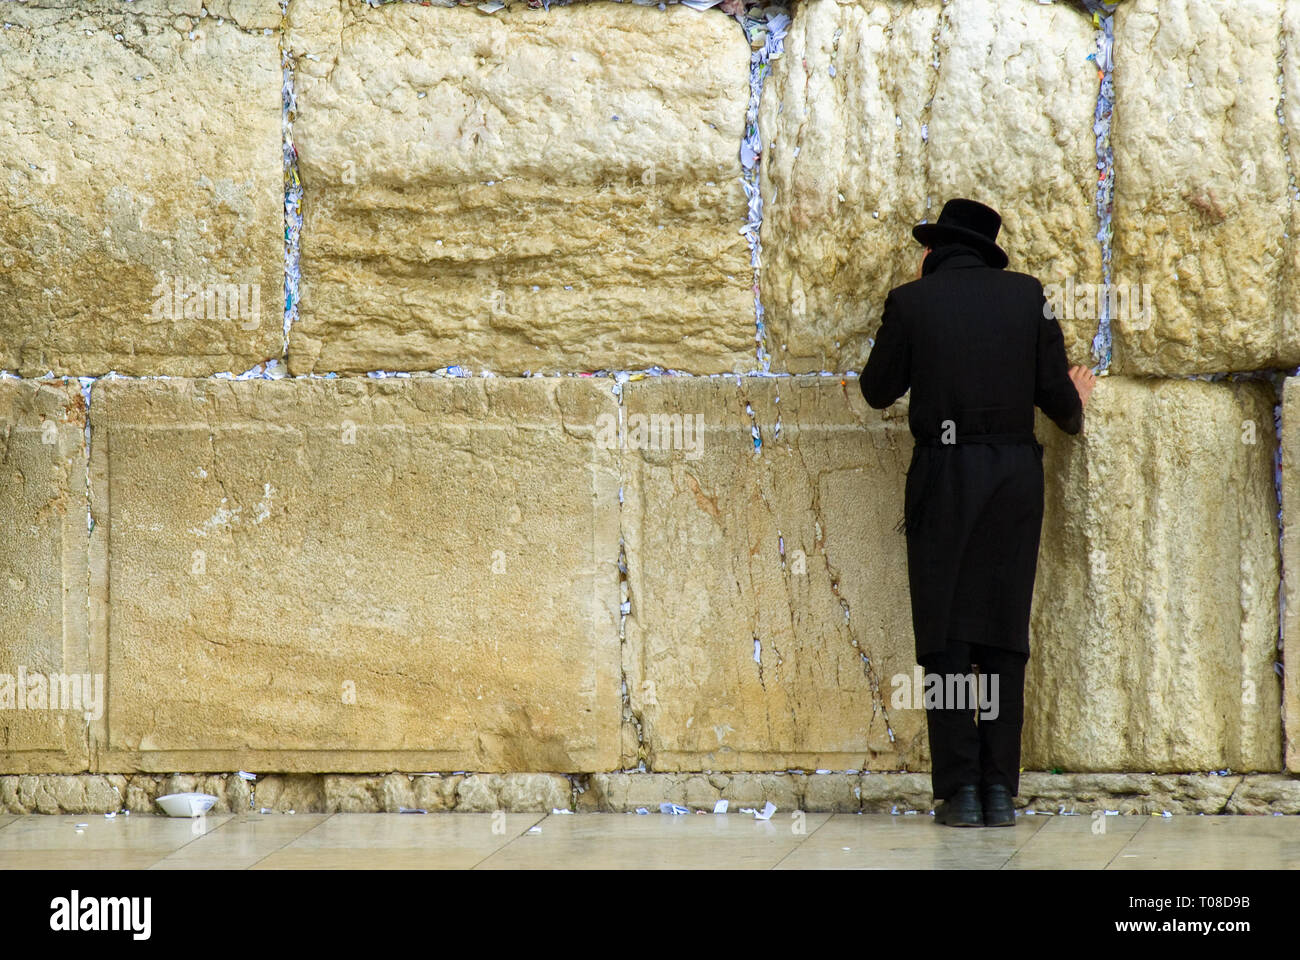 Praying Jew at Western Wall in Jerusalem, rear view - Stock Image